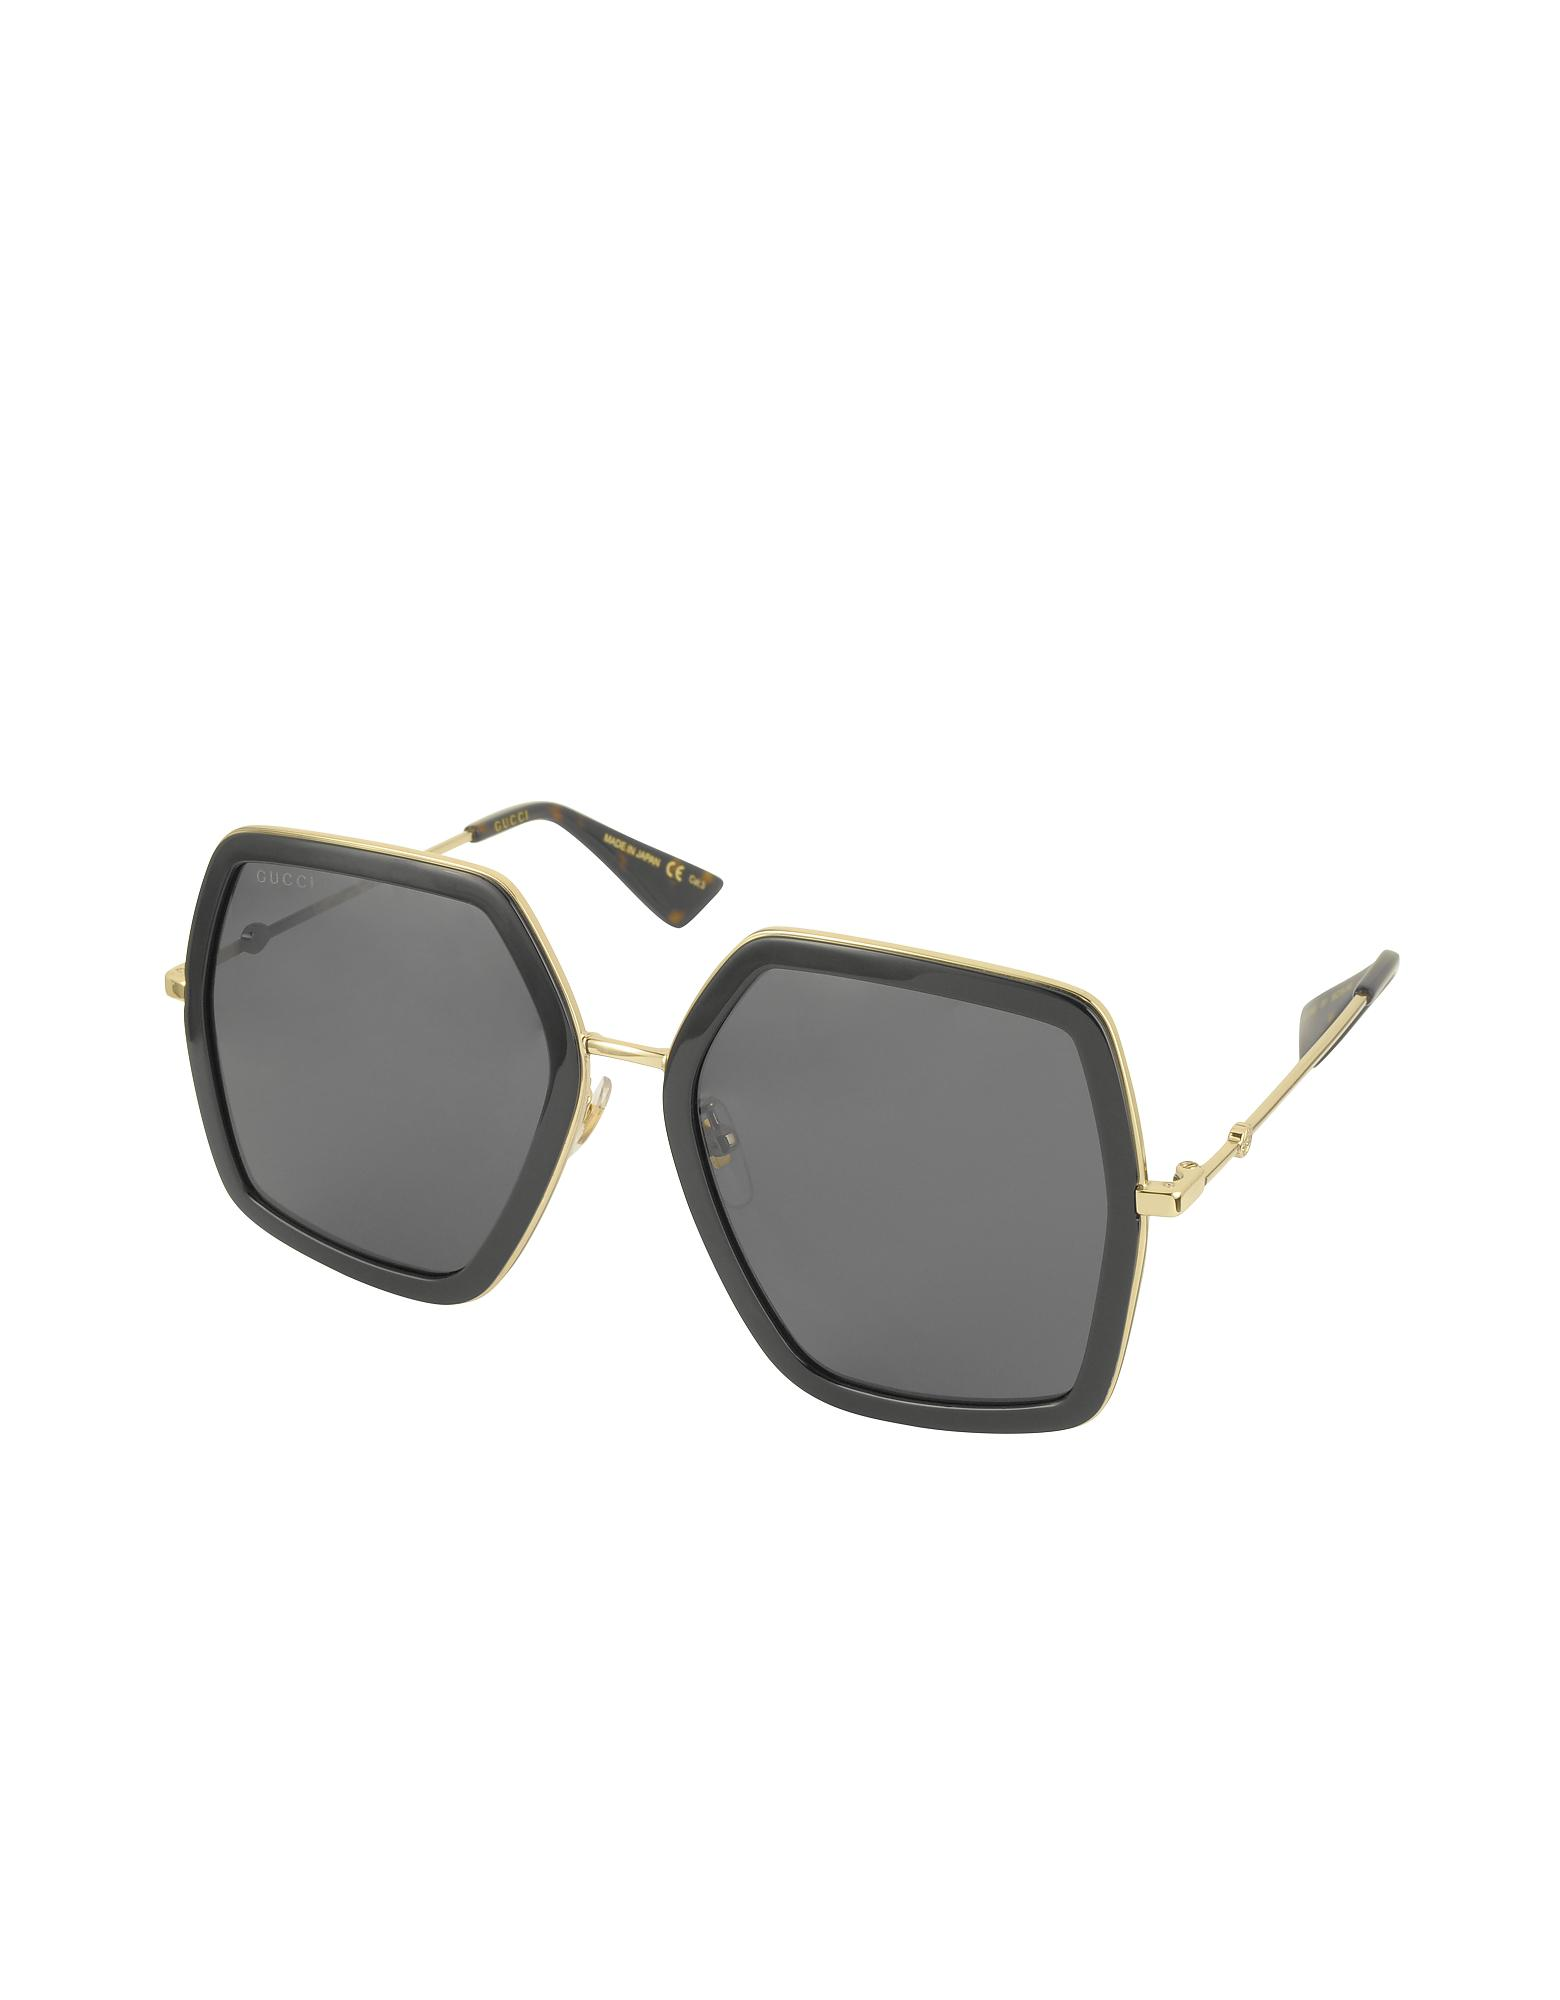 e0cd0155bb2 Gucci GG0106S 001 Black Acetate And Gold Metal Square Oversized Women s  Sunglasses in Black - Lyst